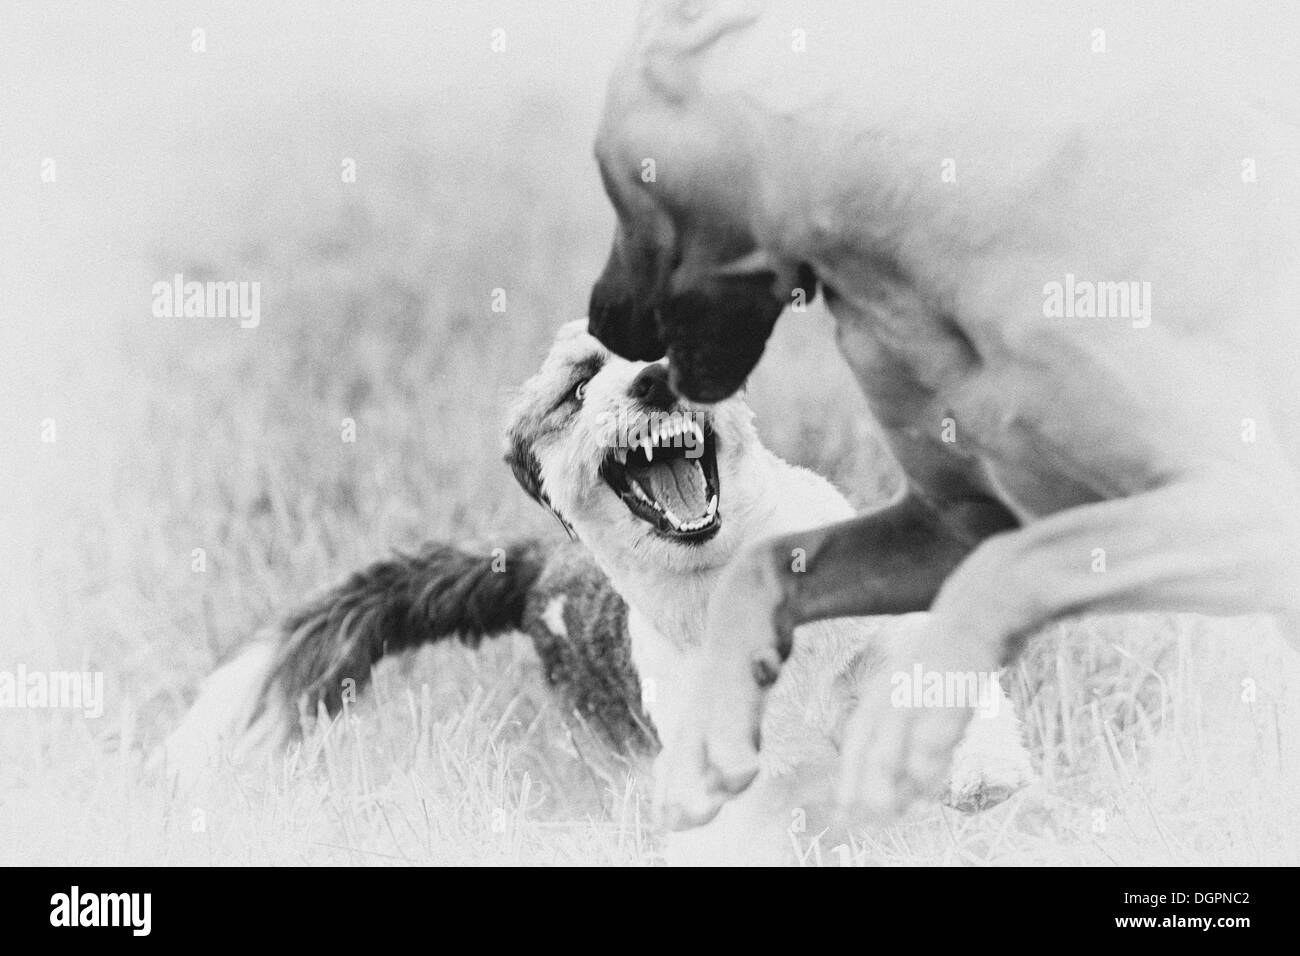 Dog playfully defending itself against another dog - Stock Image